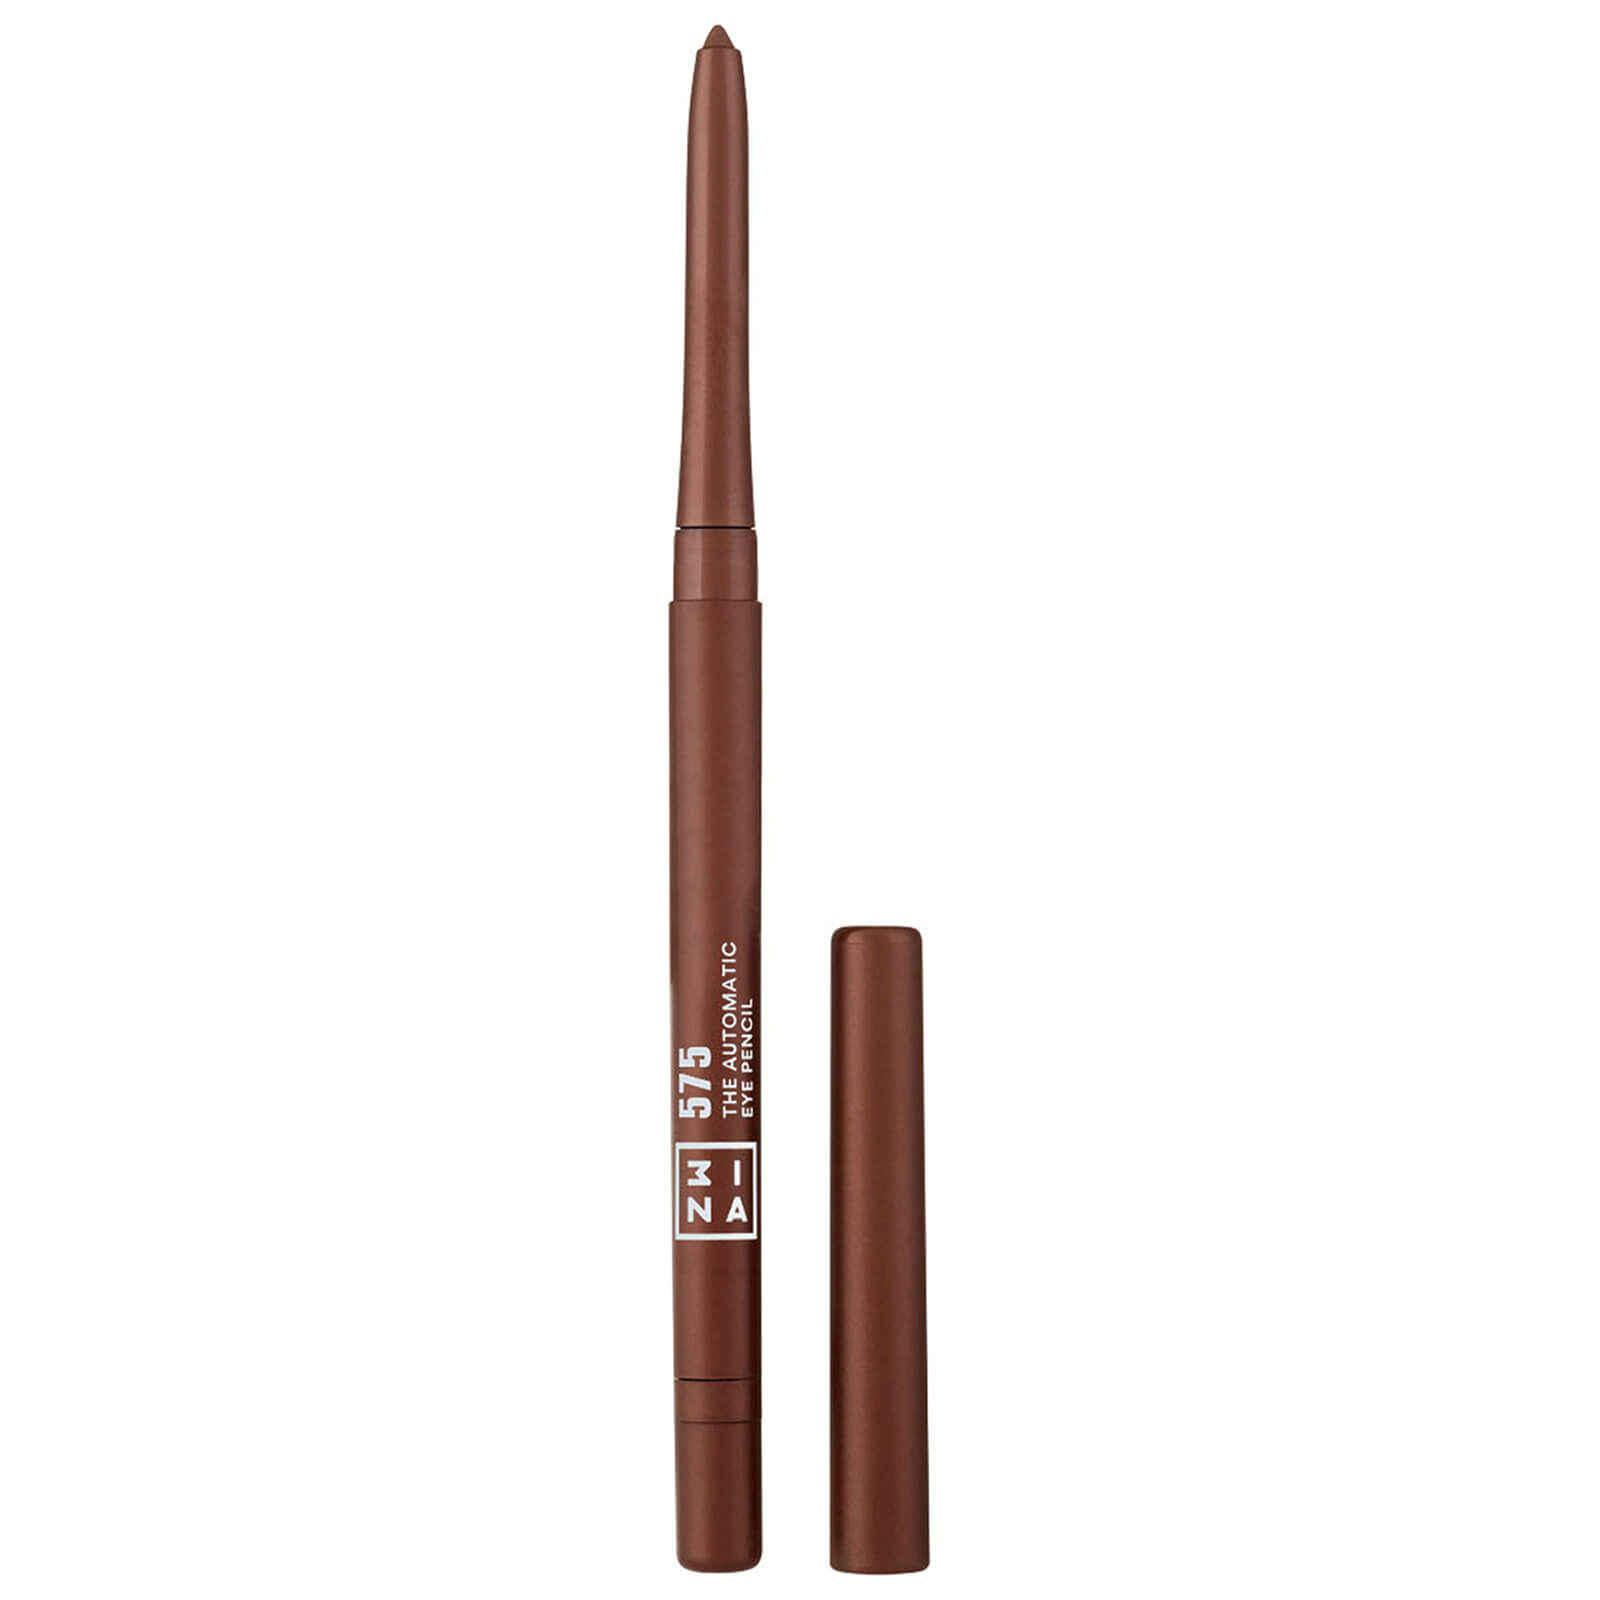 -The Automatic Eye Pencil 3INA